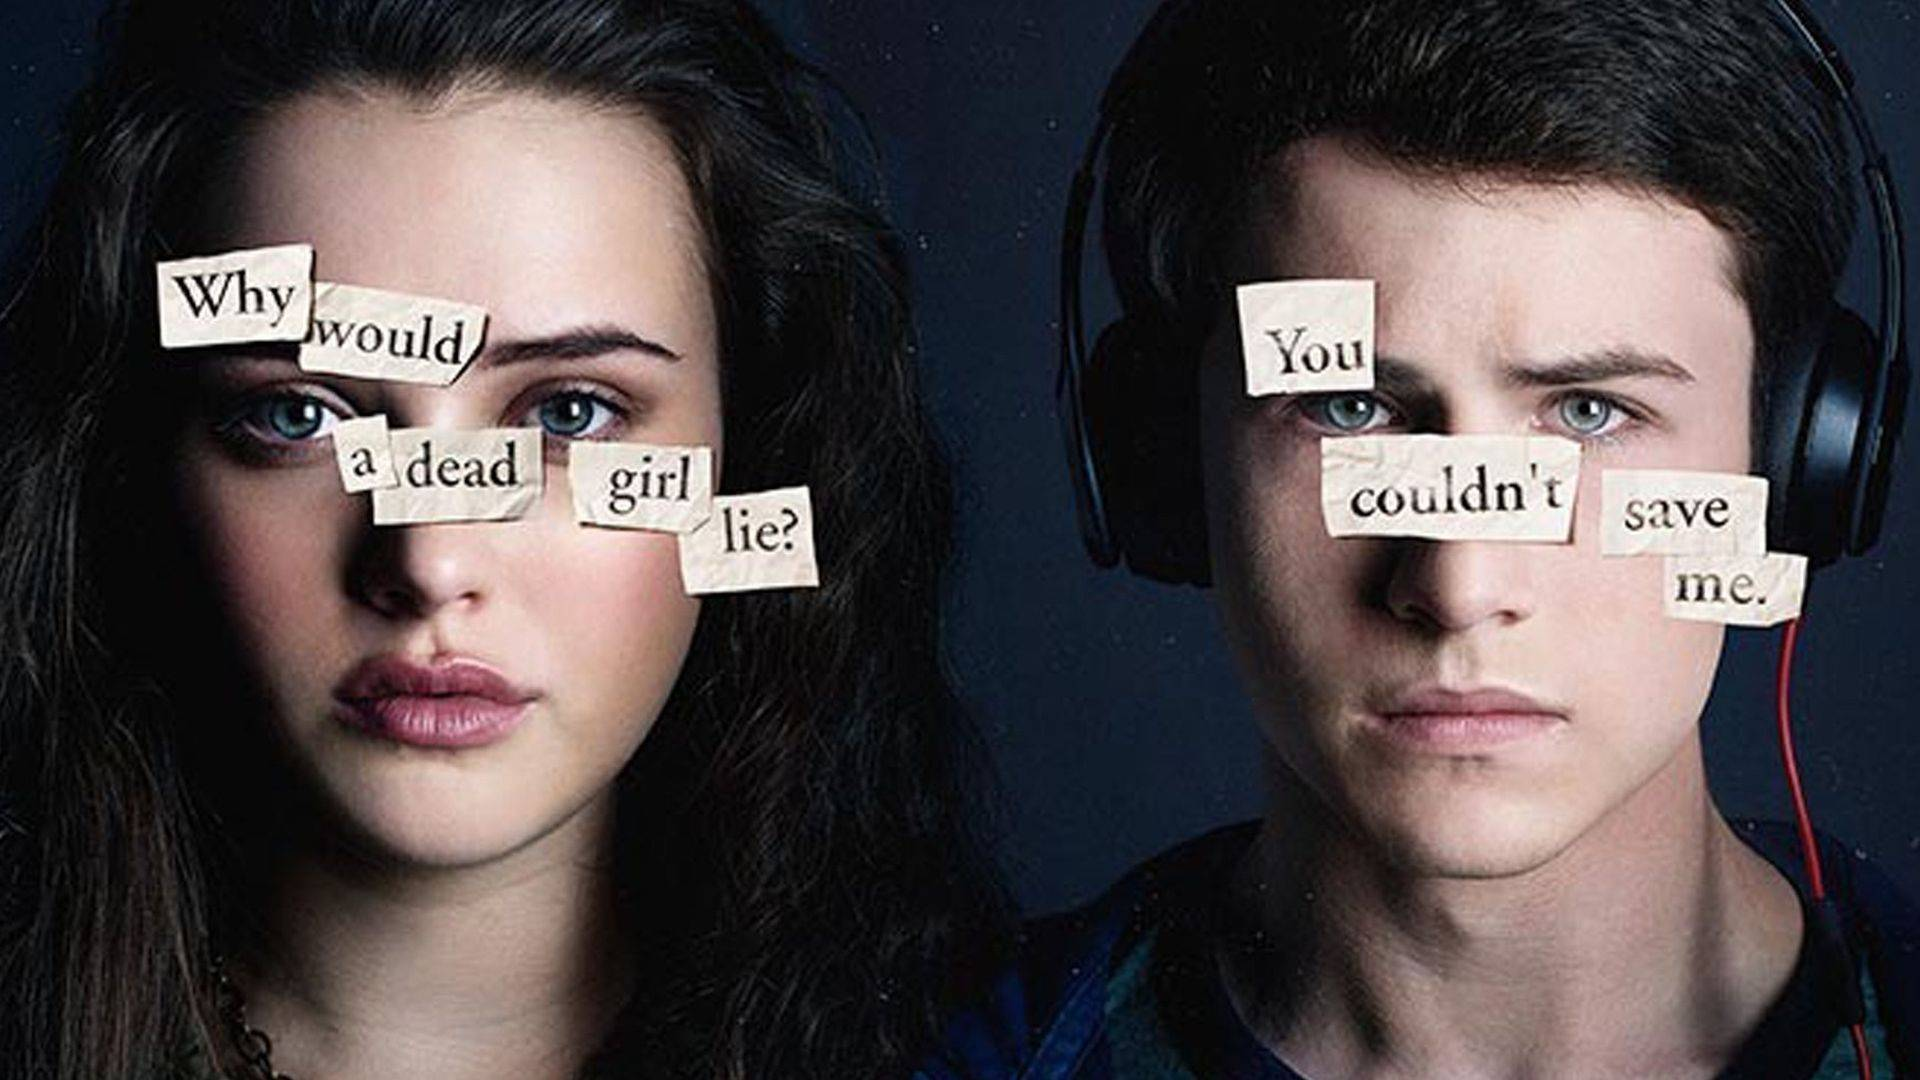 Asociación De Censura Pide A Netflix Retirar 13 Reasons Why